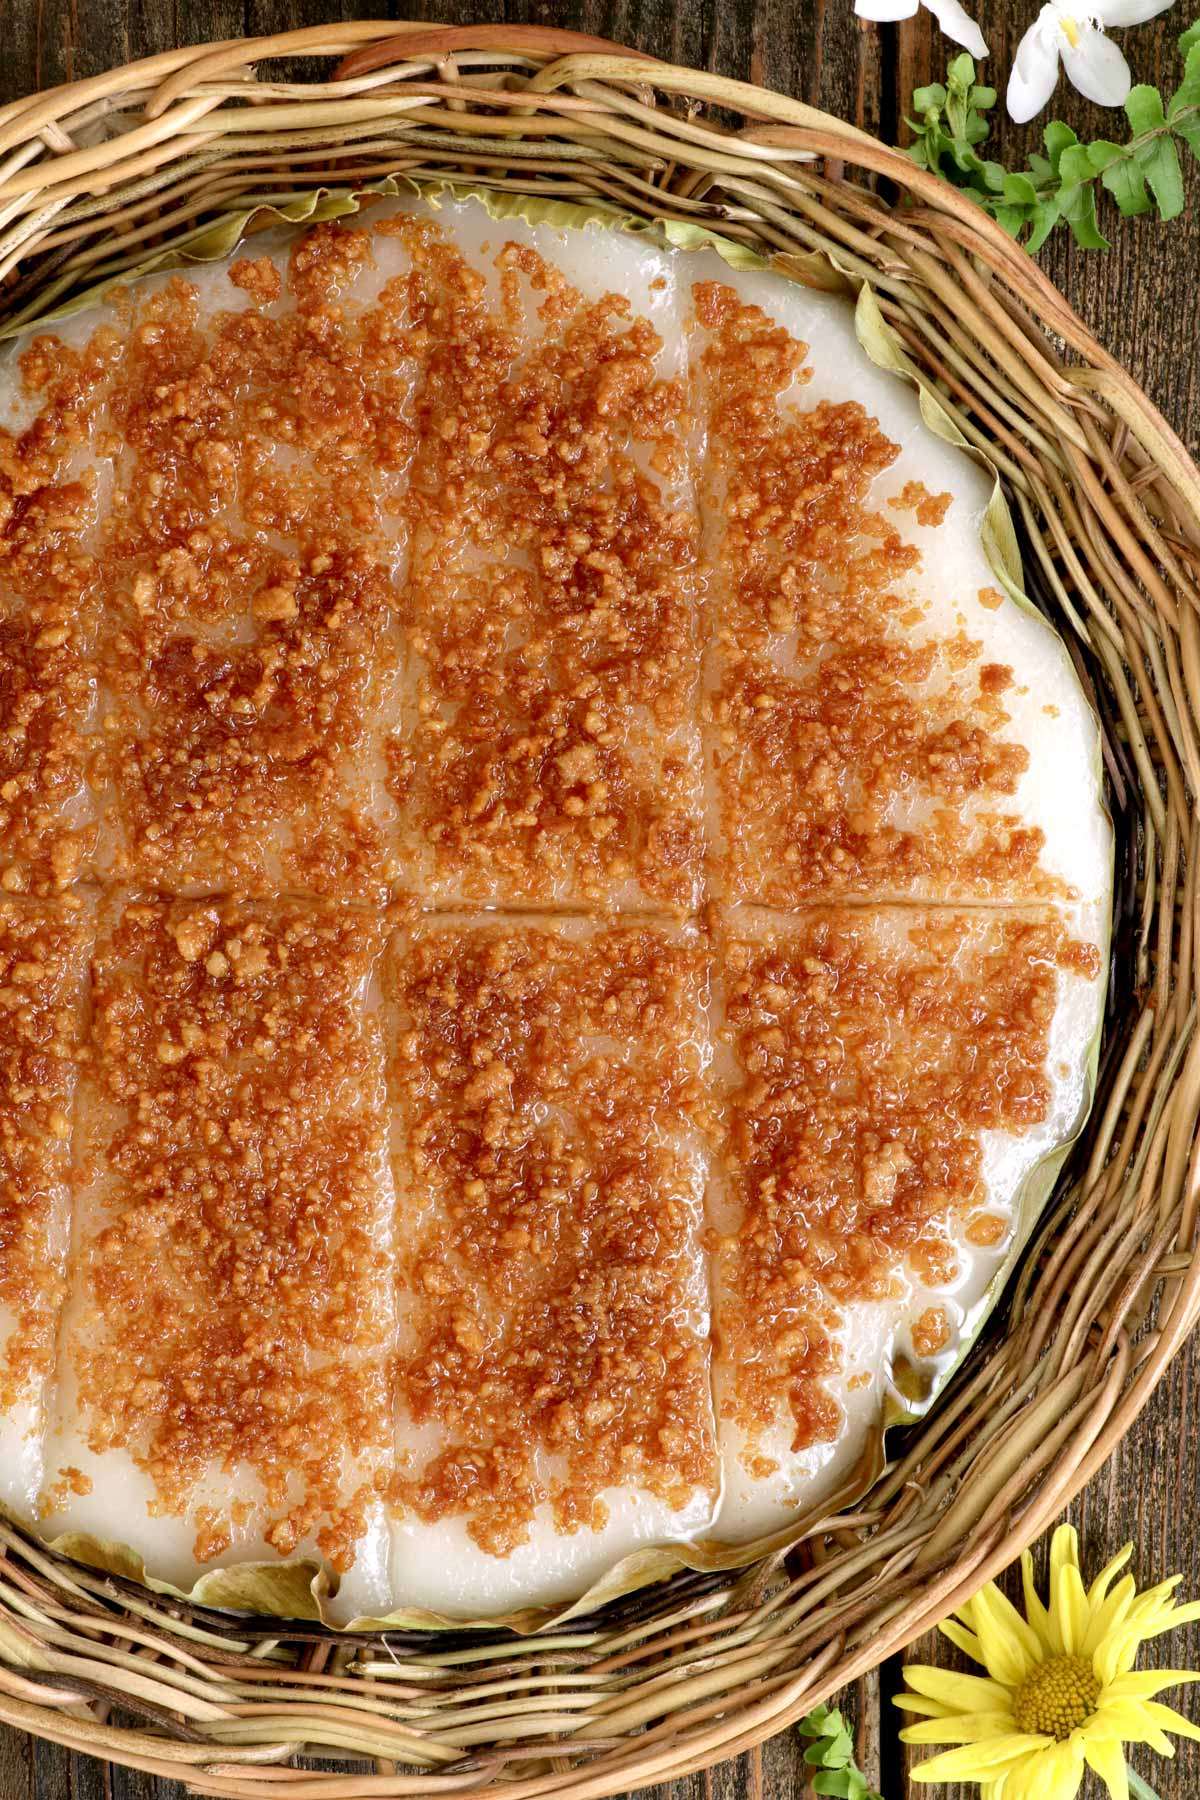 A sticky rice cake with coconut curds toppings.